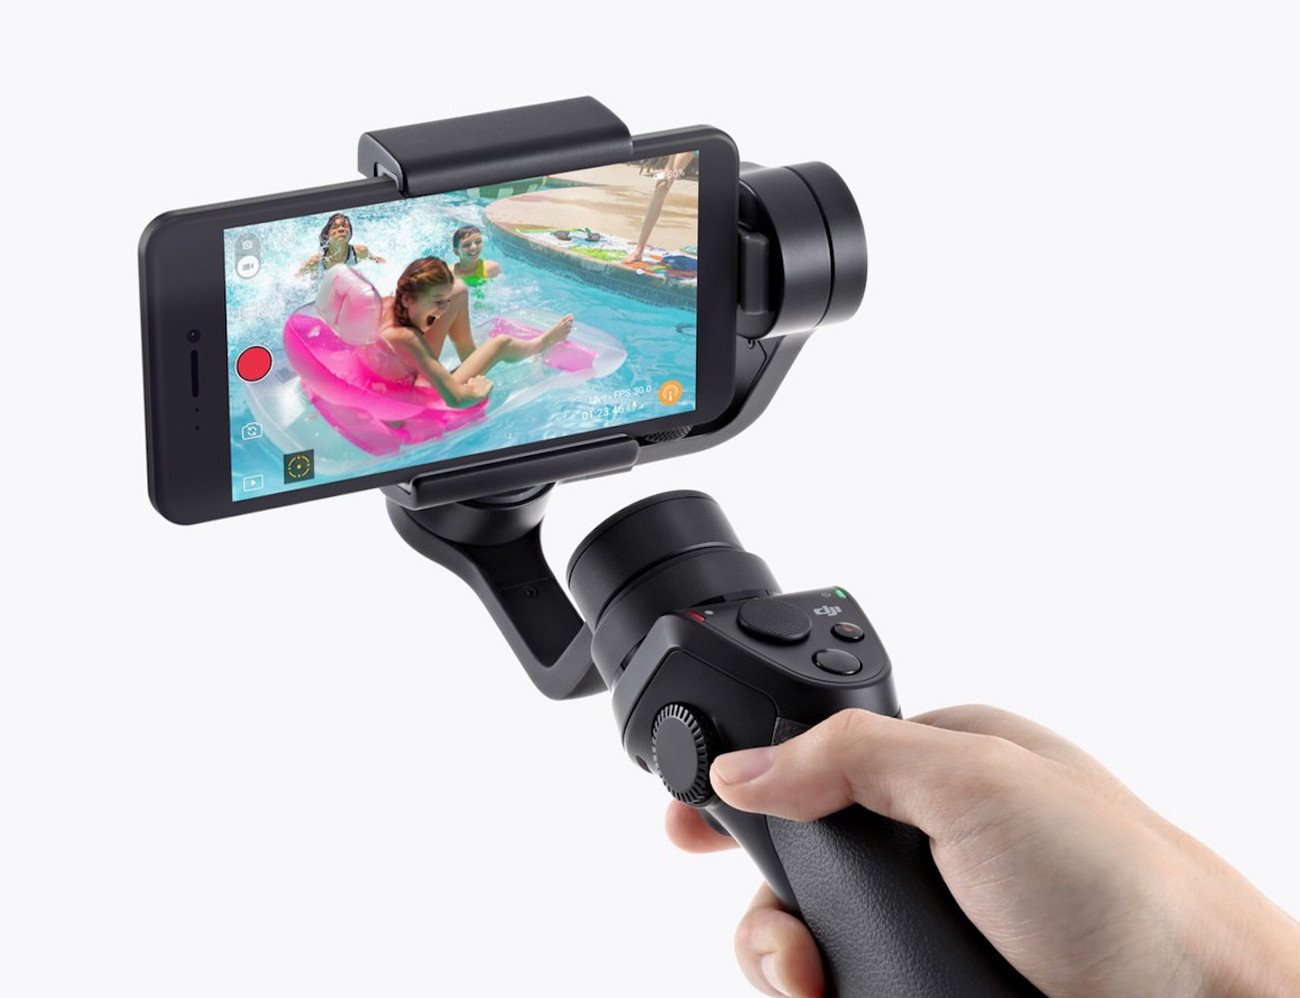 DJI Osmo Mobile Motion Camera Setup